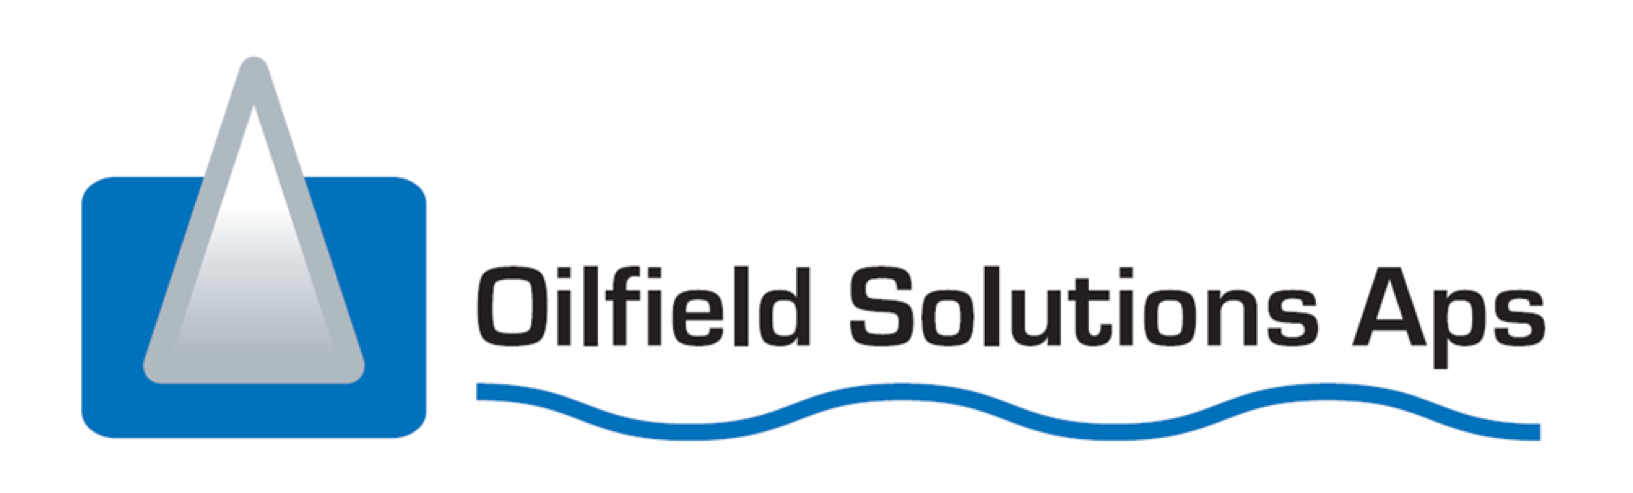 Oilfield Solutions ApS sponsor for Fyrskibet Esbjerg.png